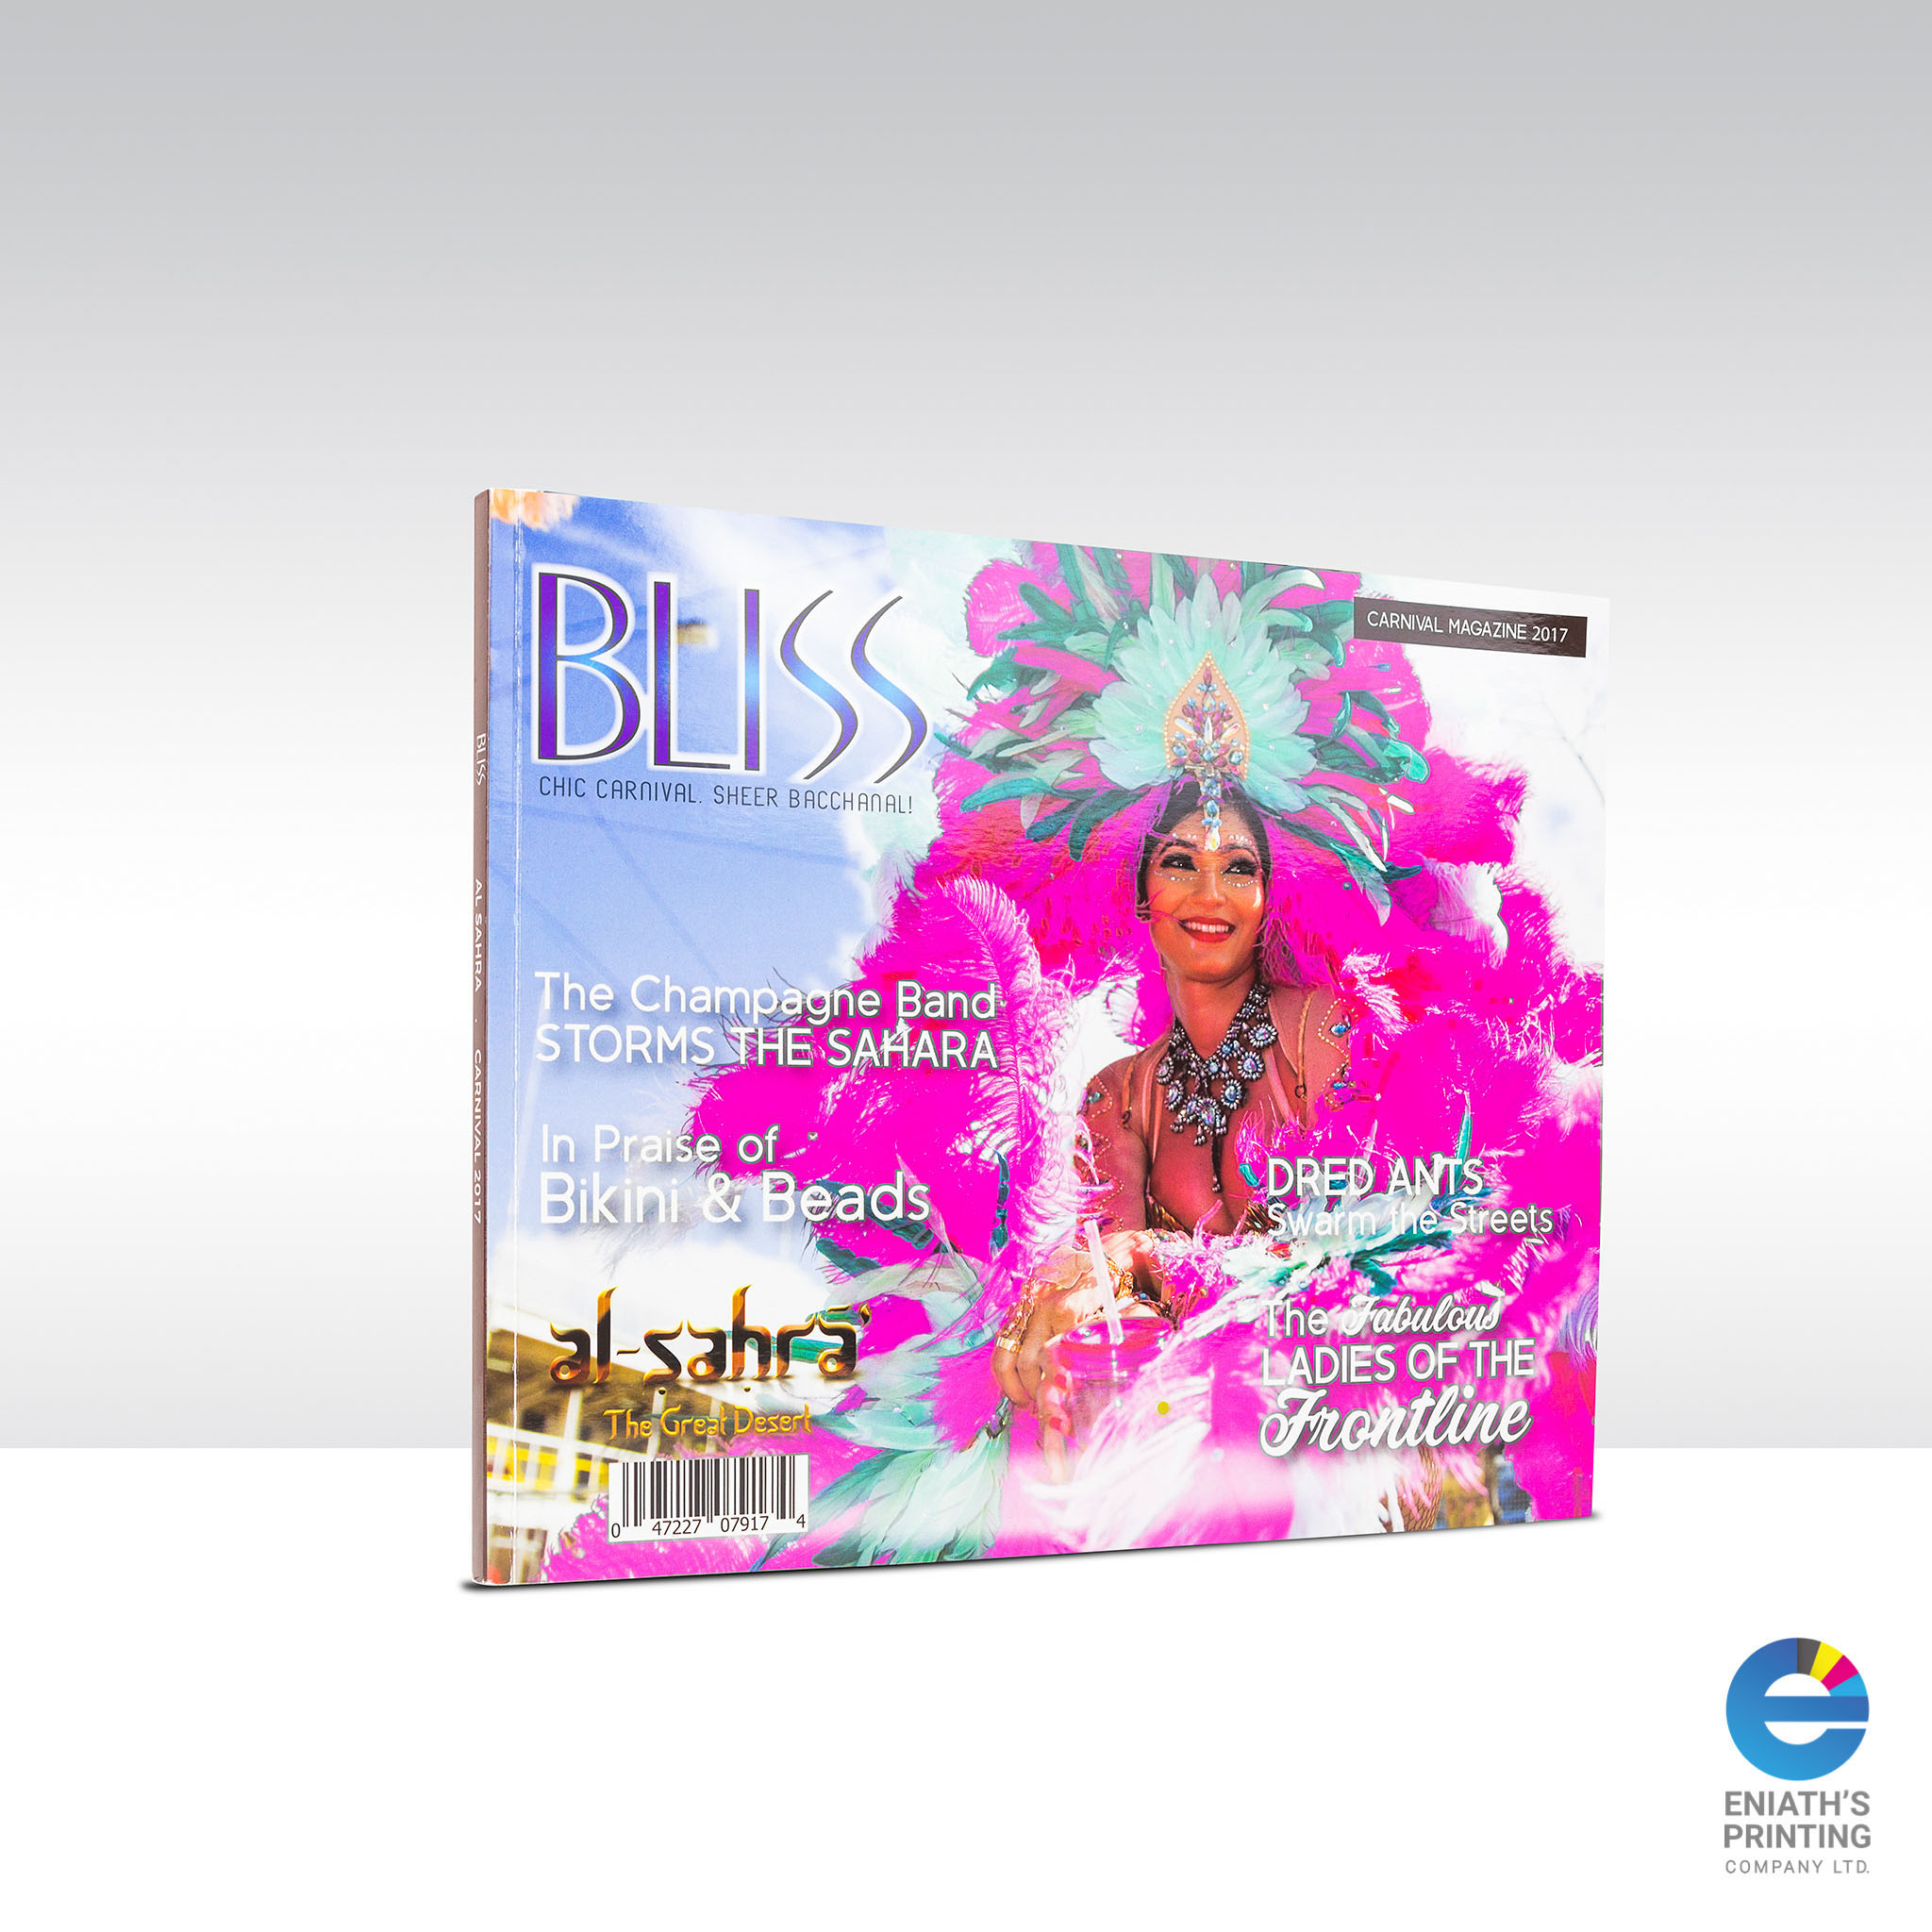 Bliss - Printed by Eniath's Printing Co. Ltd.